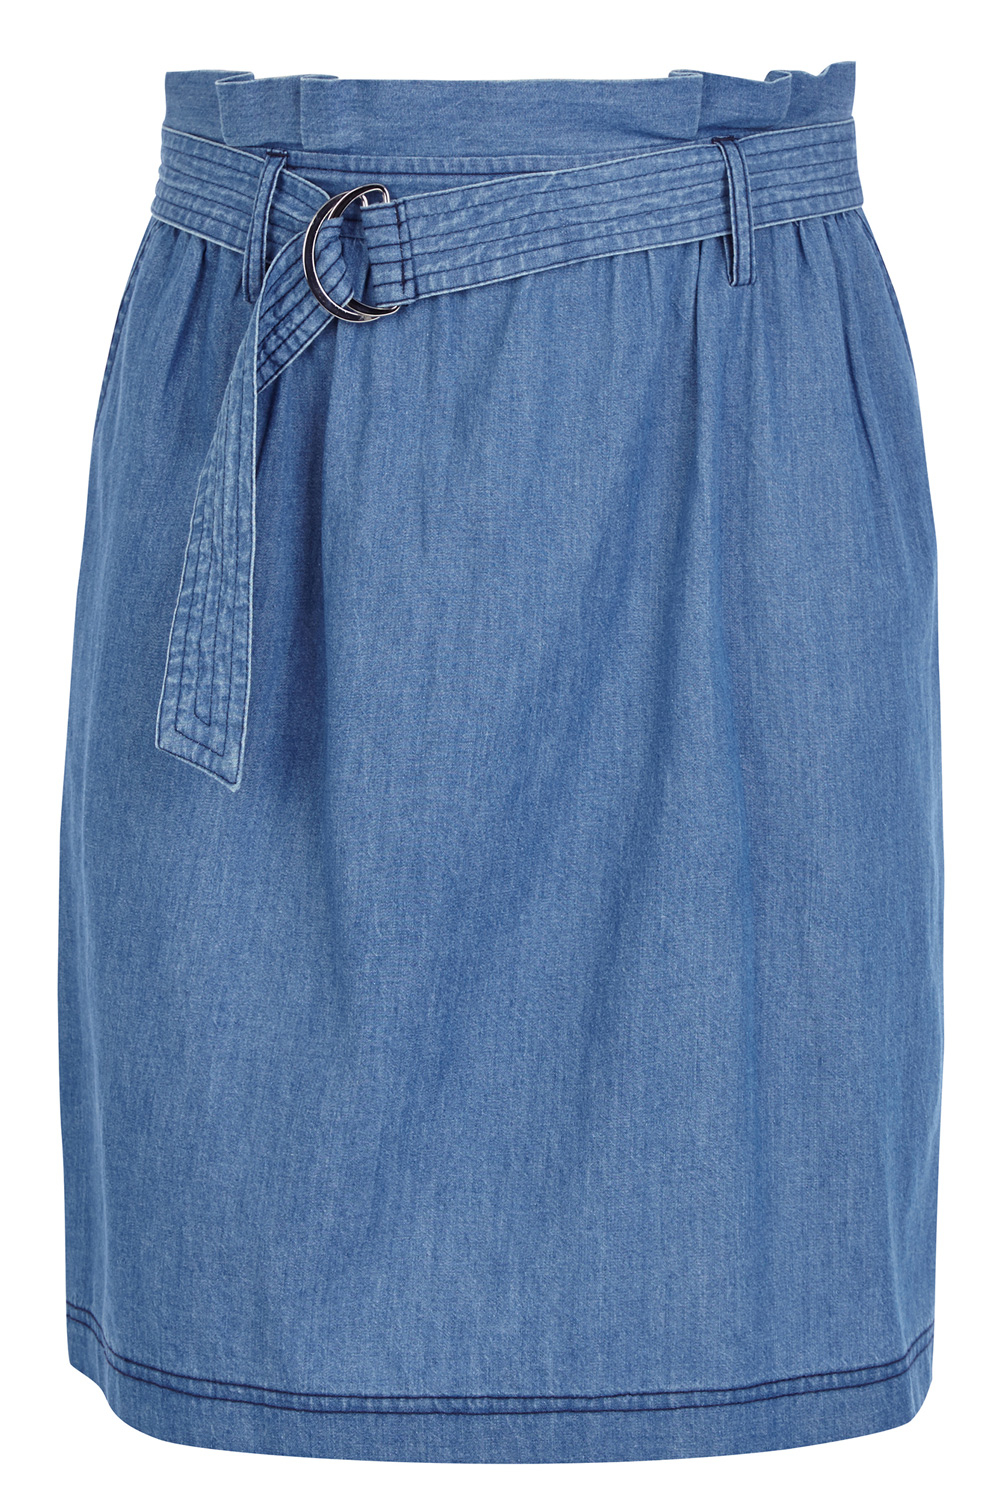 oasis d ring chambray skirt in blue lyst